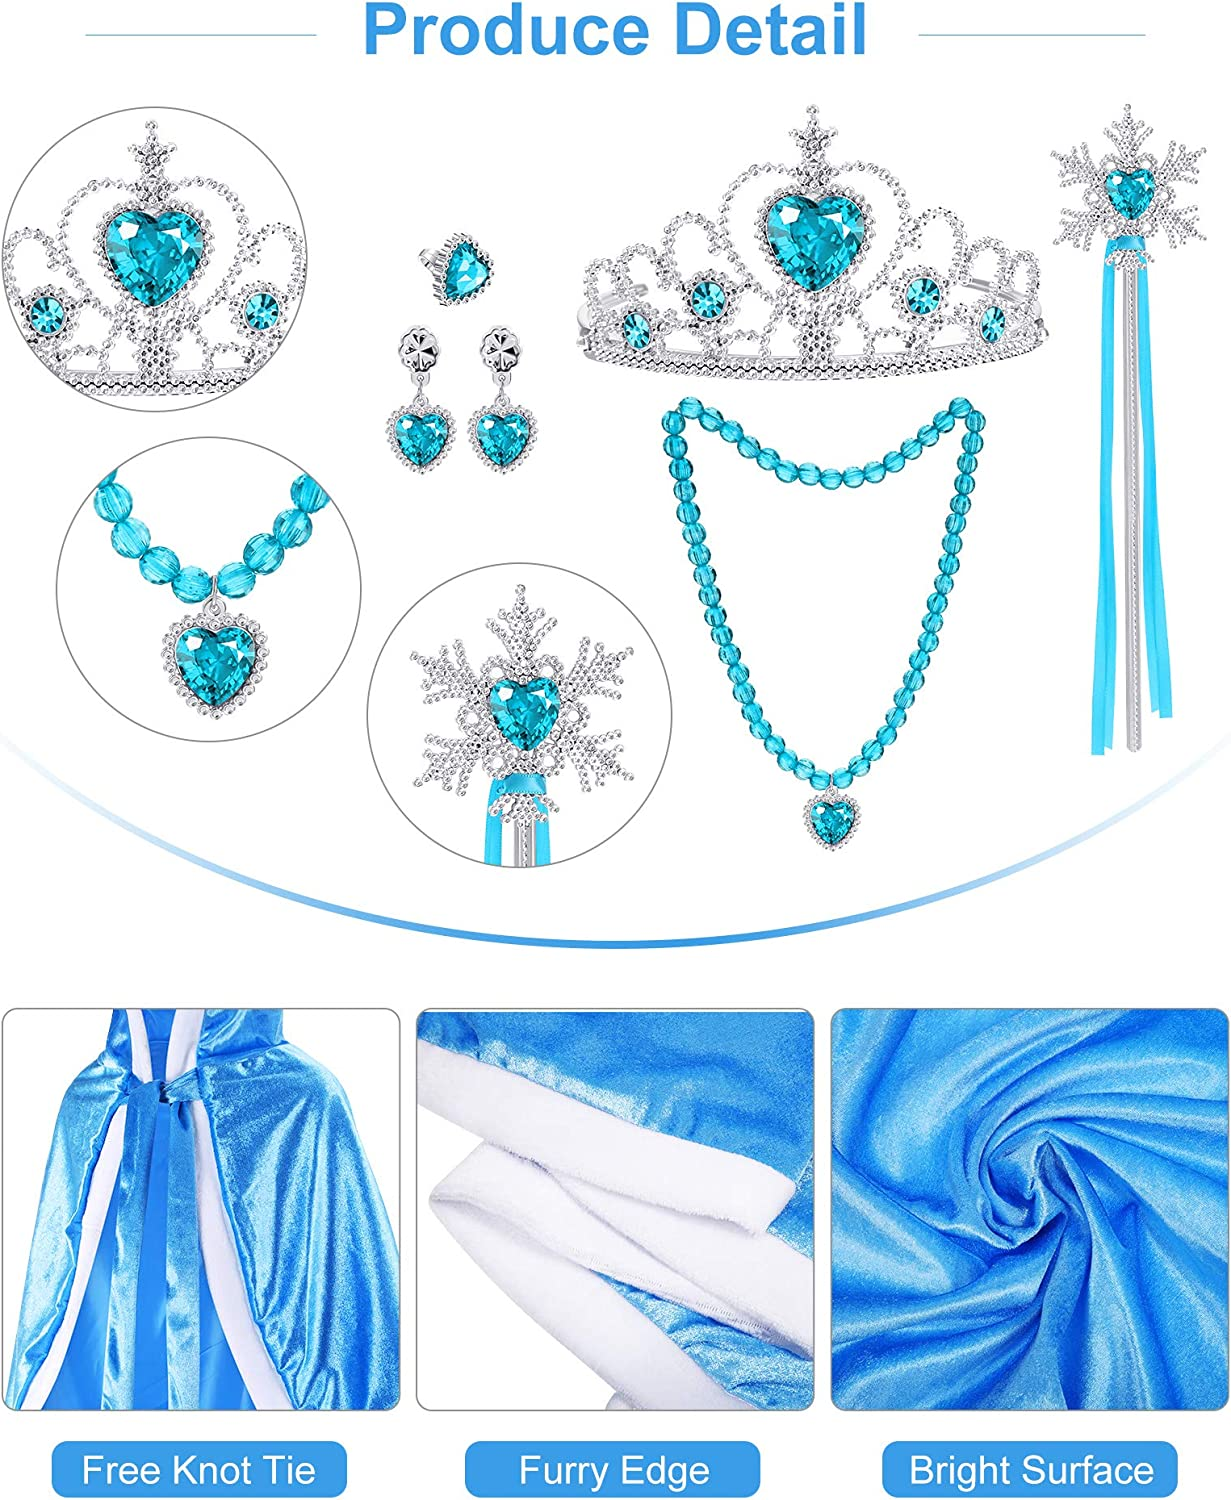 7 Pieces Princess Costume Accessories for 2-4 Years Little Girls Dress up Christmas Birthday Cosplay Hooded Cape Wand Set